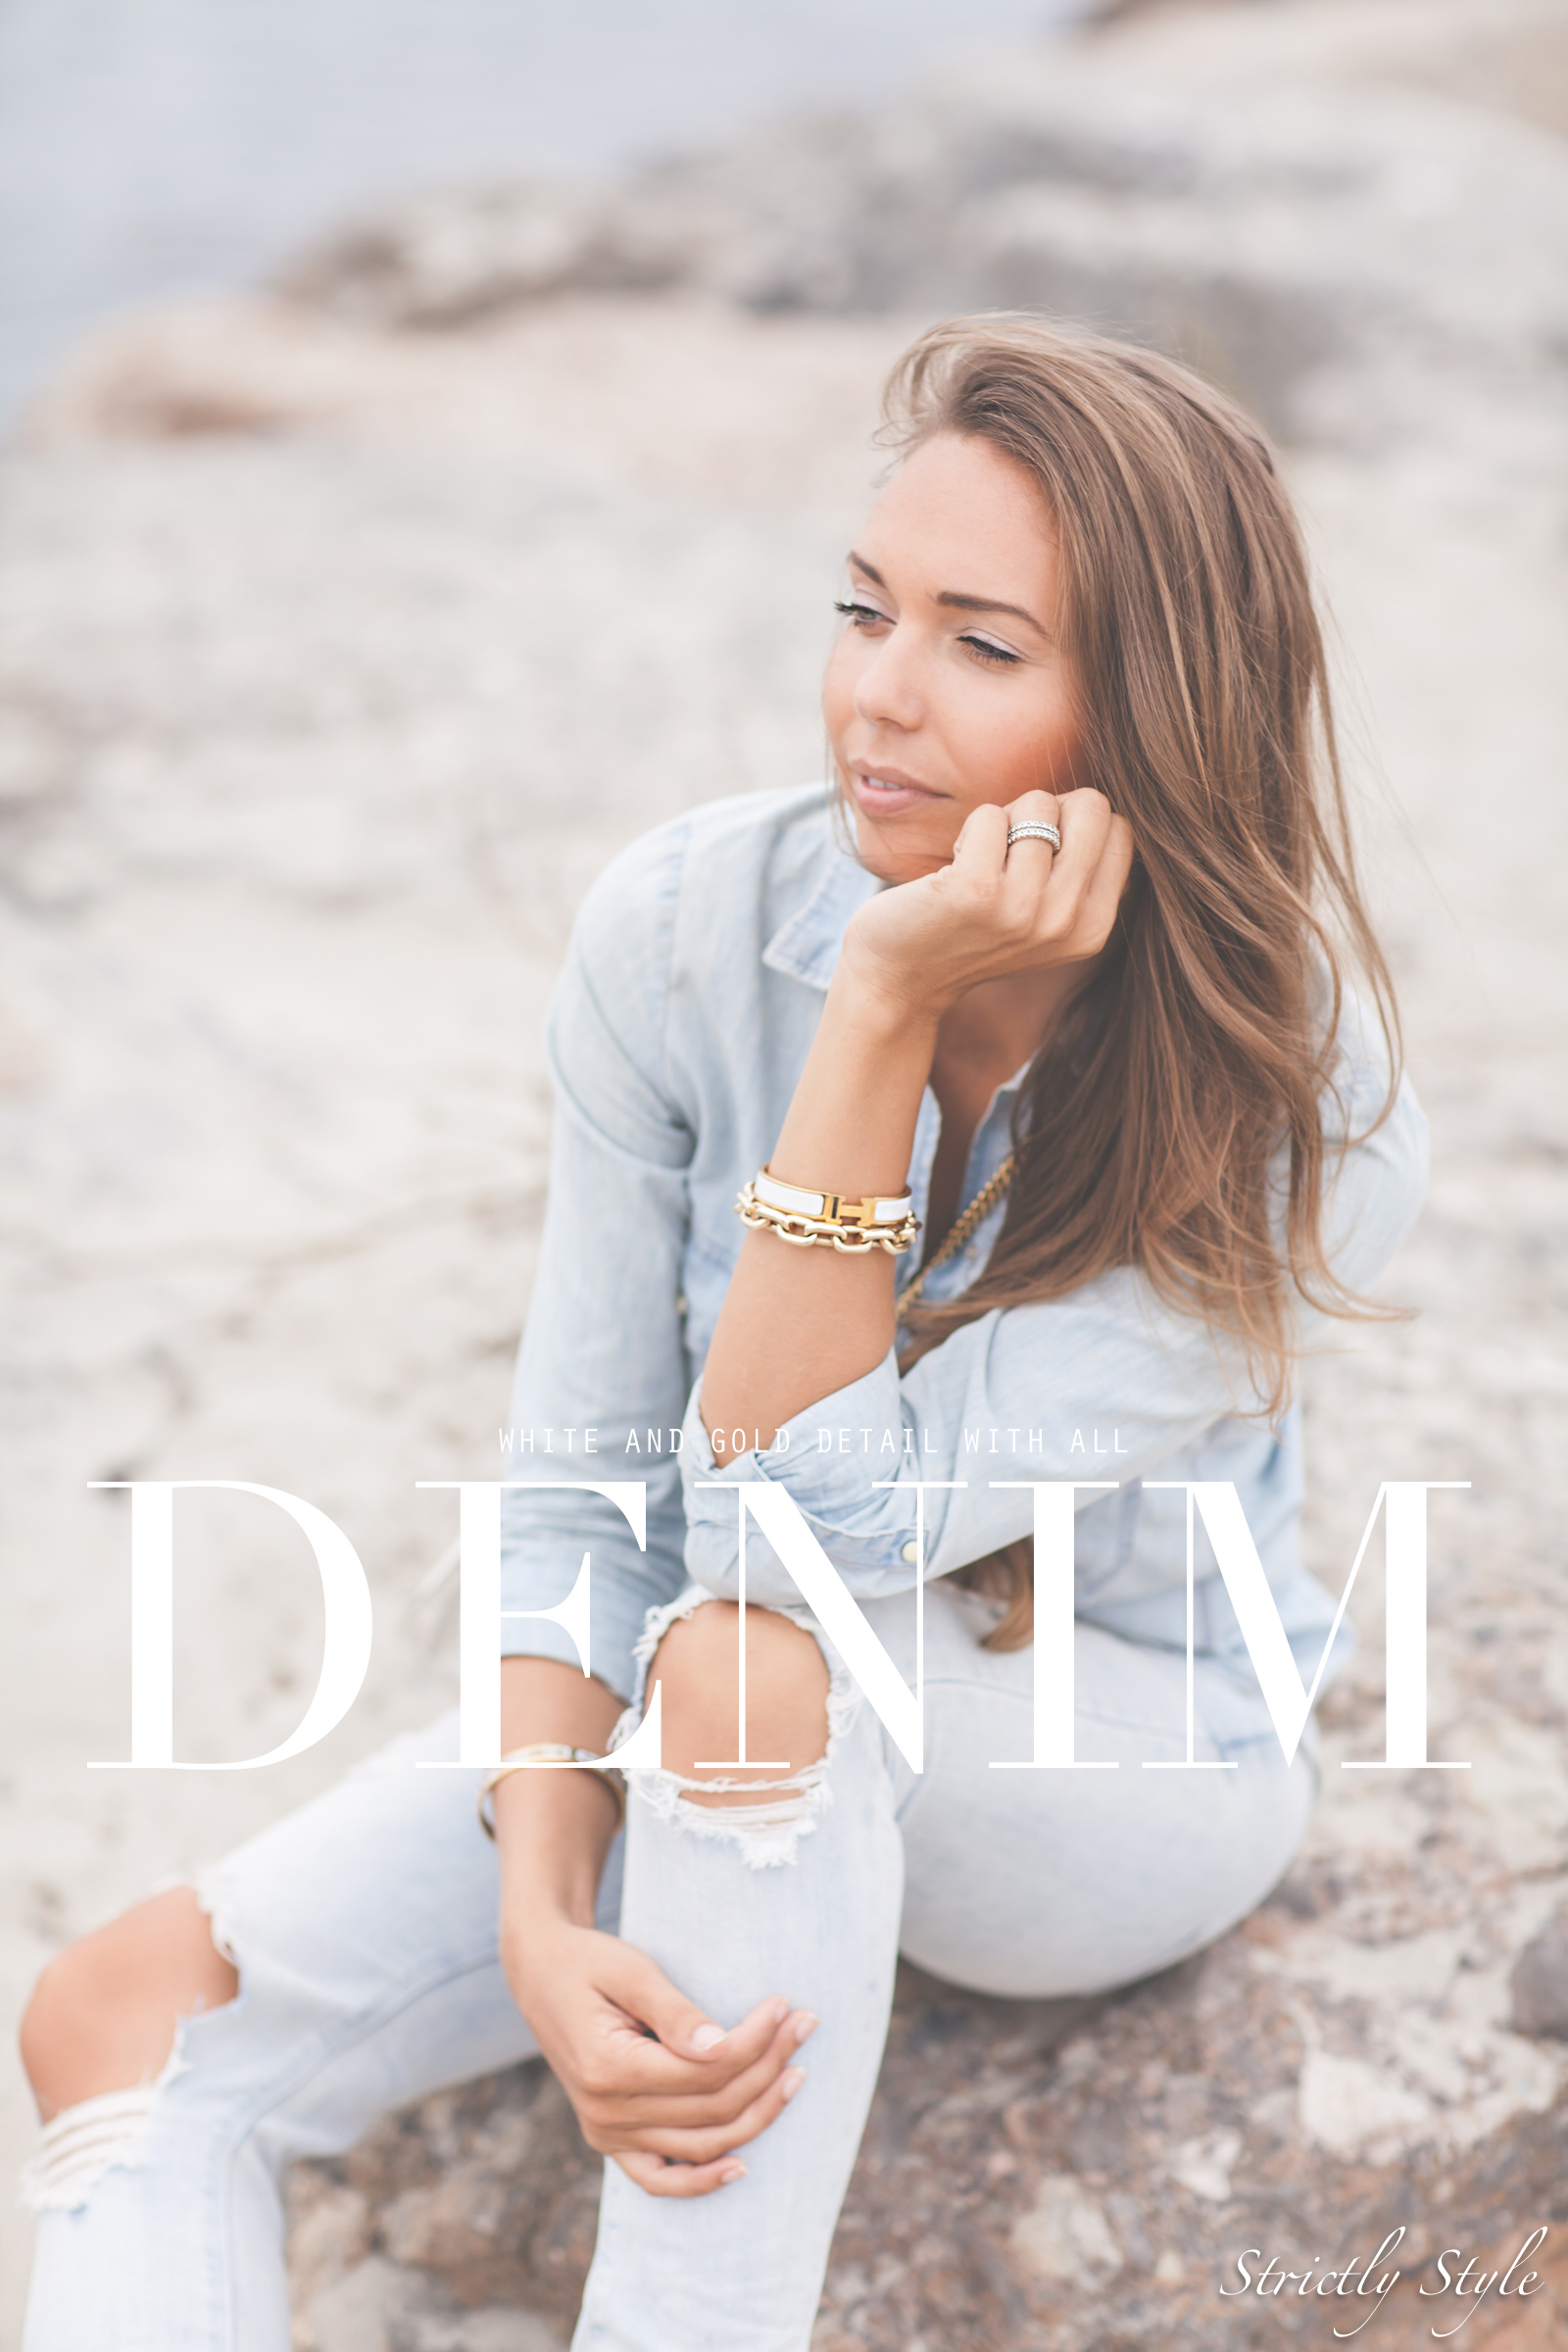 alldenimoutfit-7063TEXT